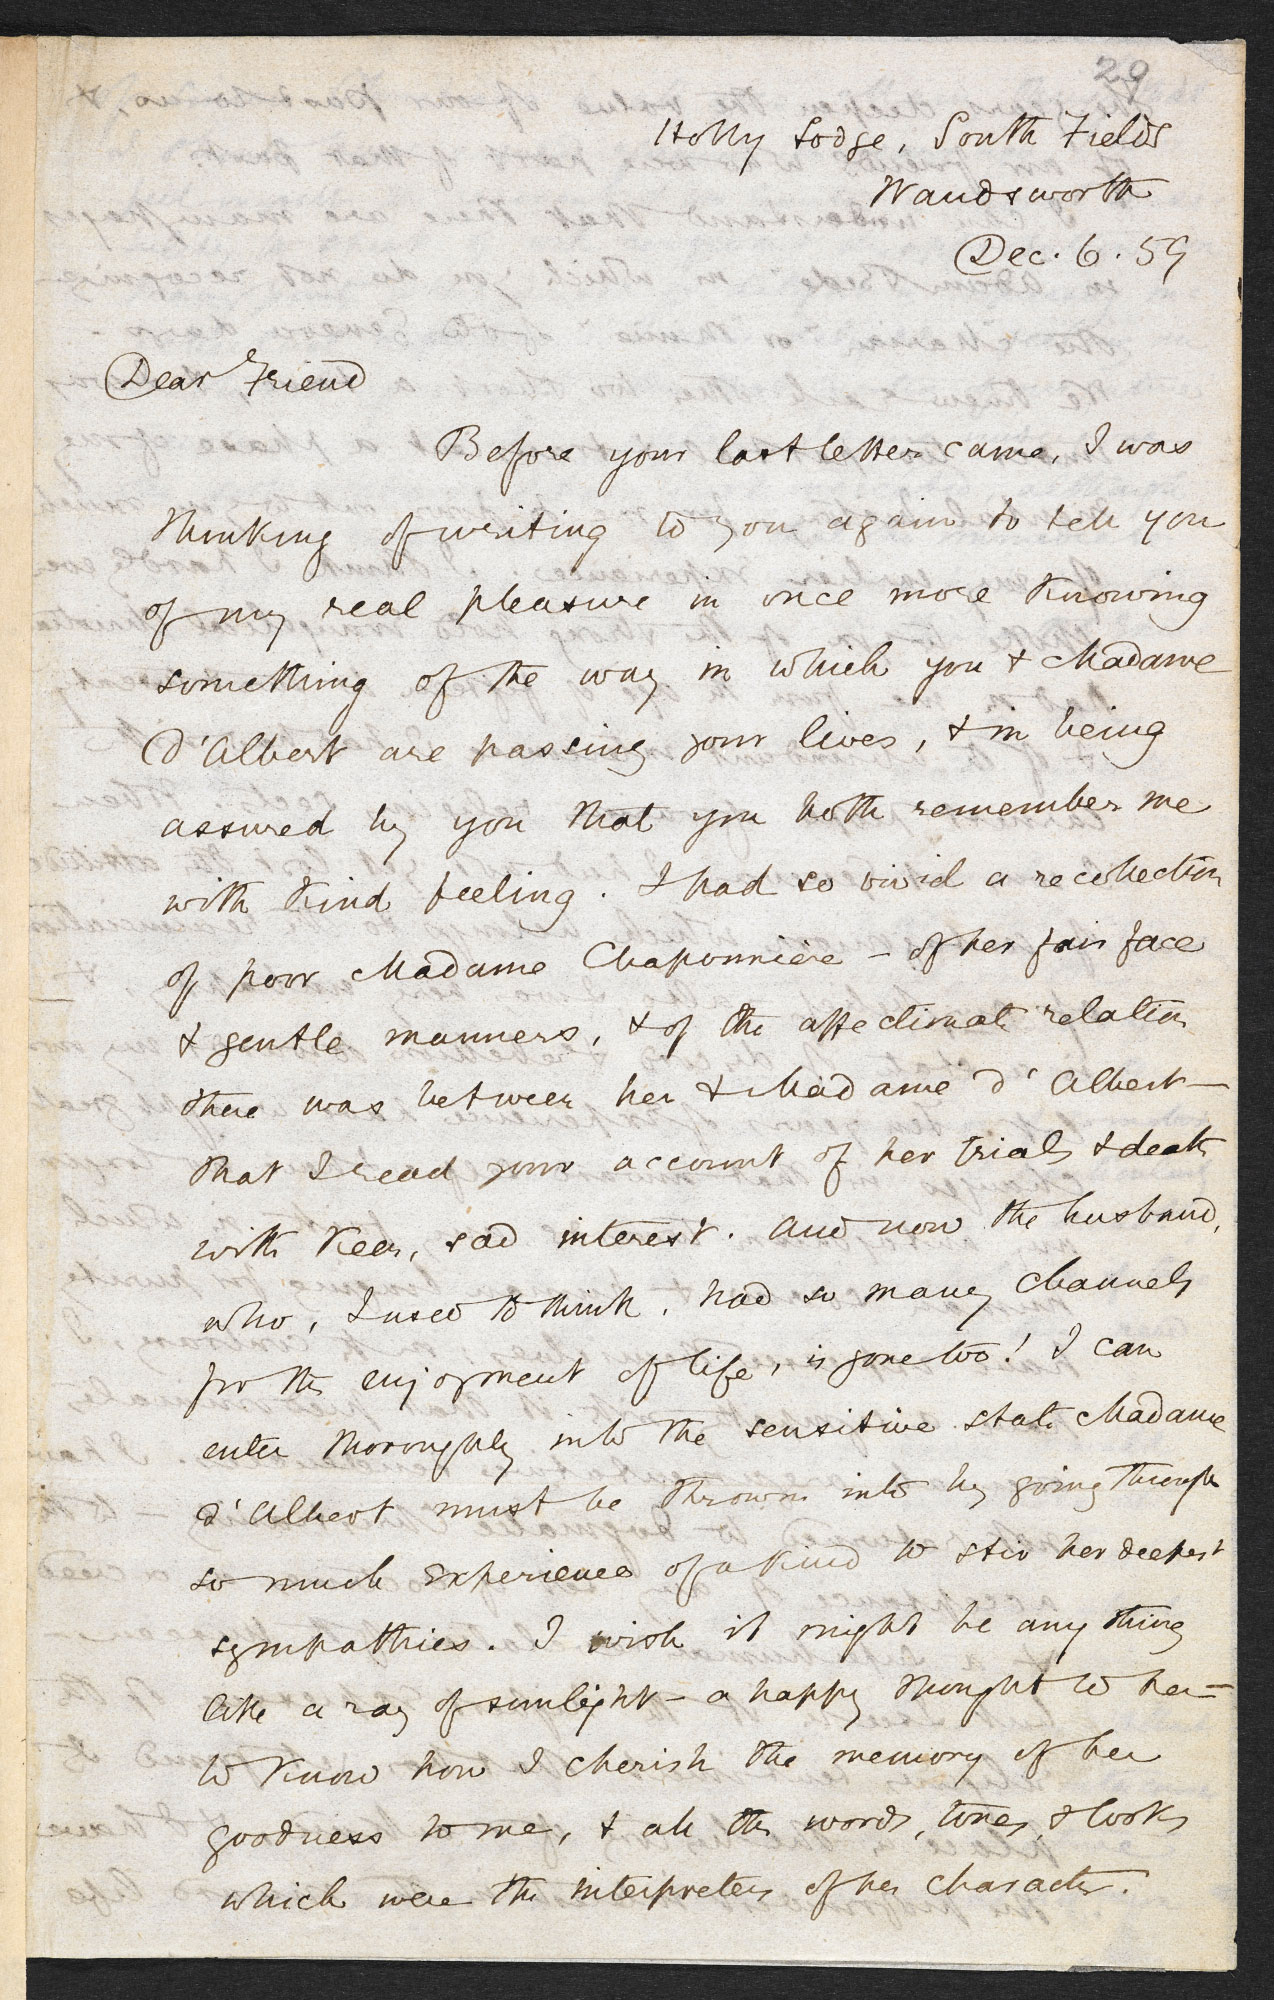 Letter from George Eliot to Francois D'Albert-Durade, 6